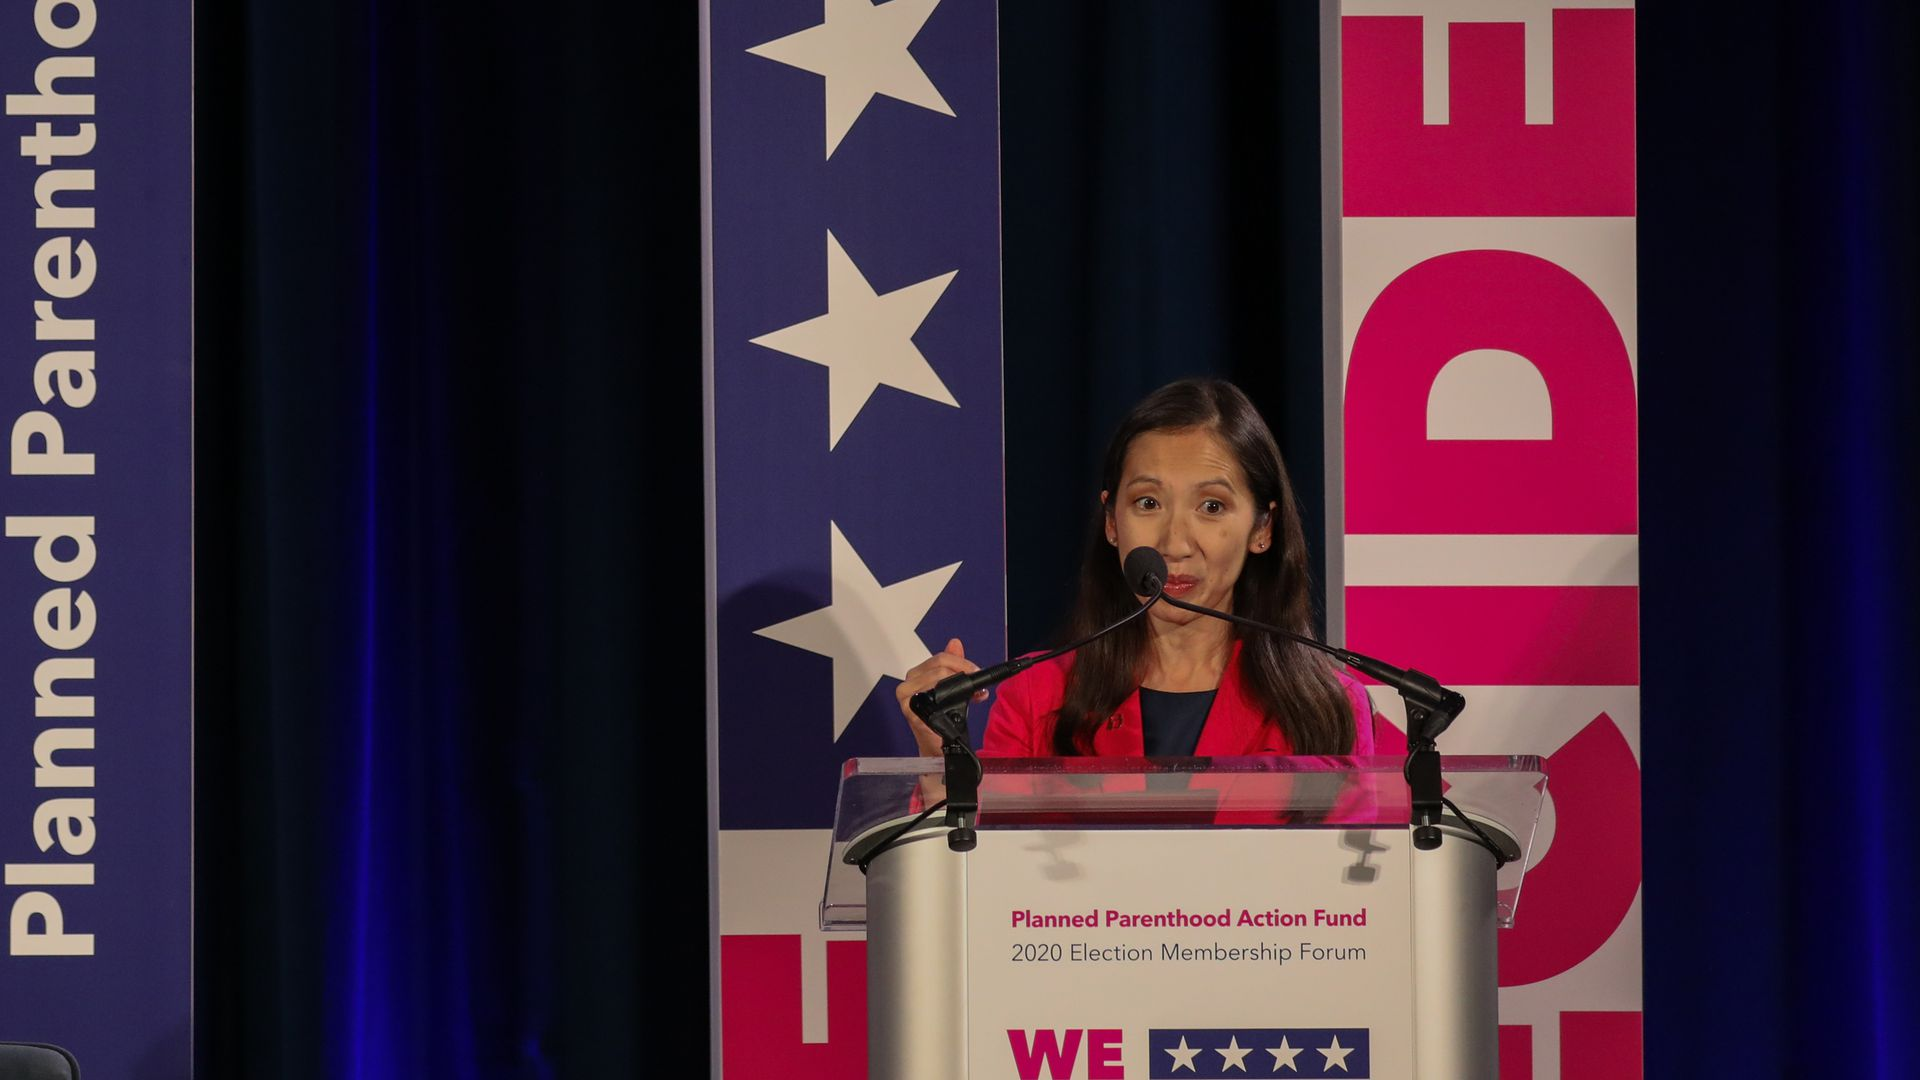 Dr. Leana Wen addresses the crowd at the We Decide: Planned Parenthood Action Fund 2020 Election Forum to Focus on Abortion and Reproductive Rights event in Columbia, SC on June 22